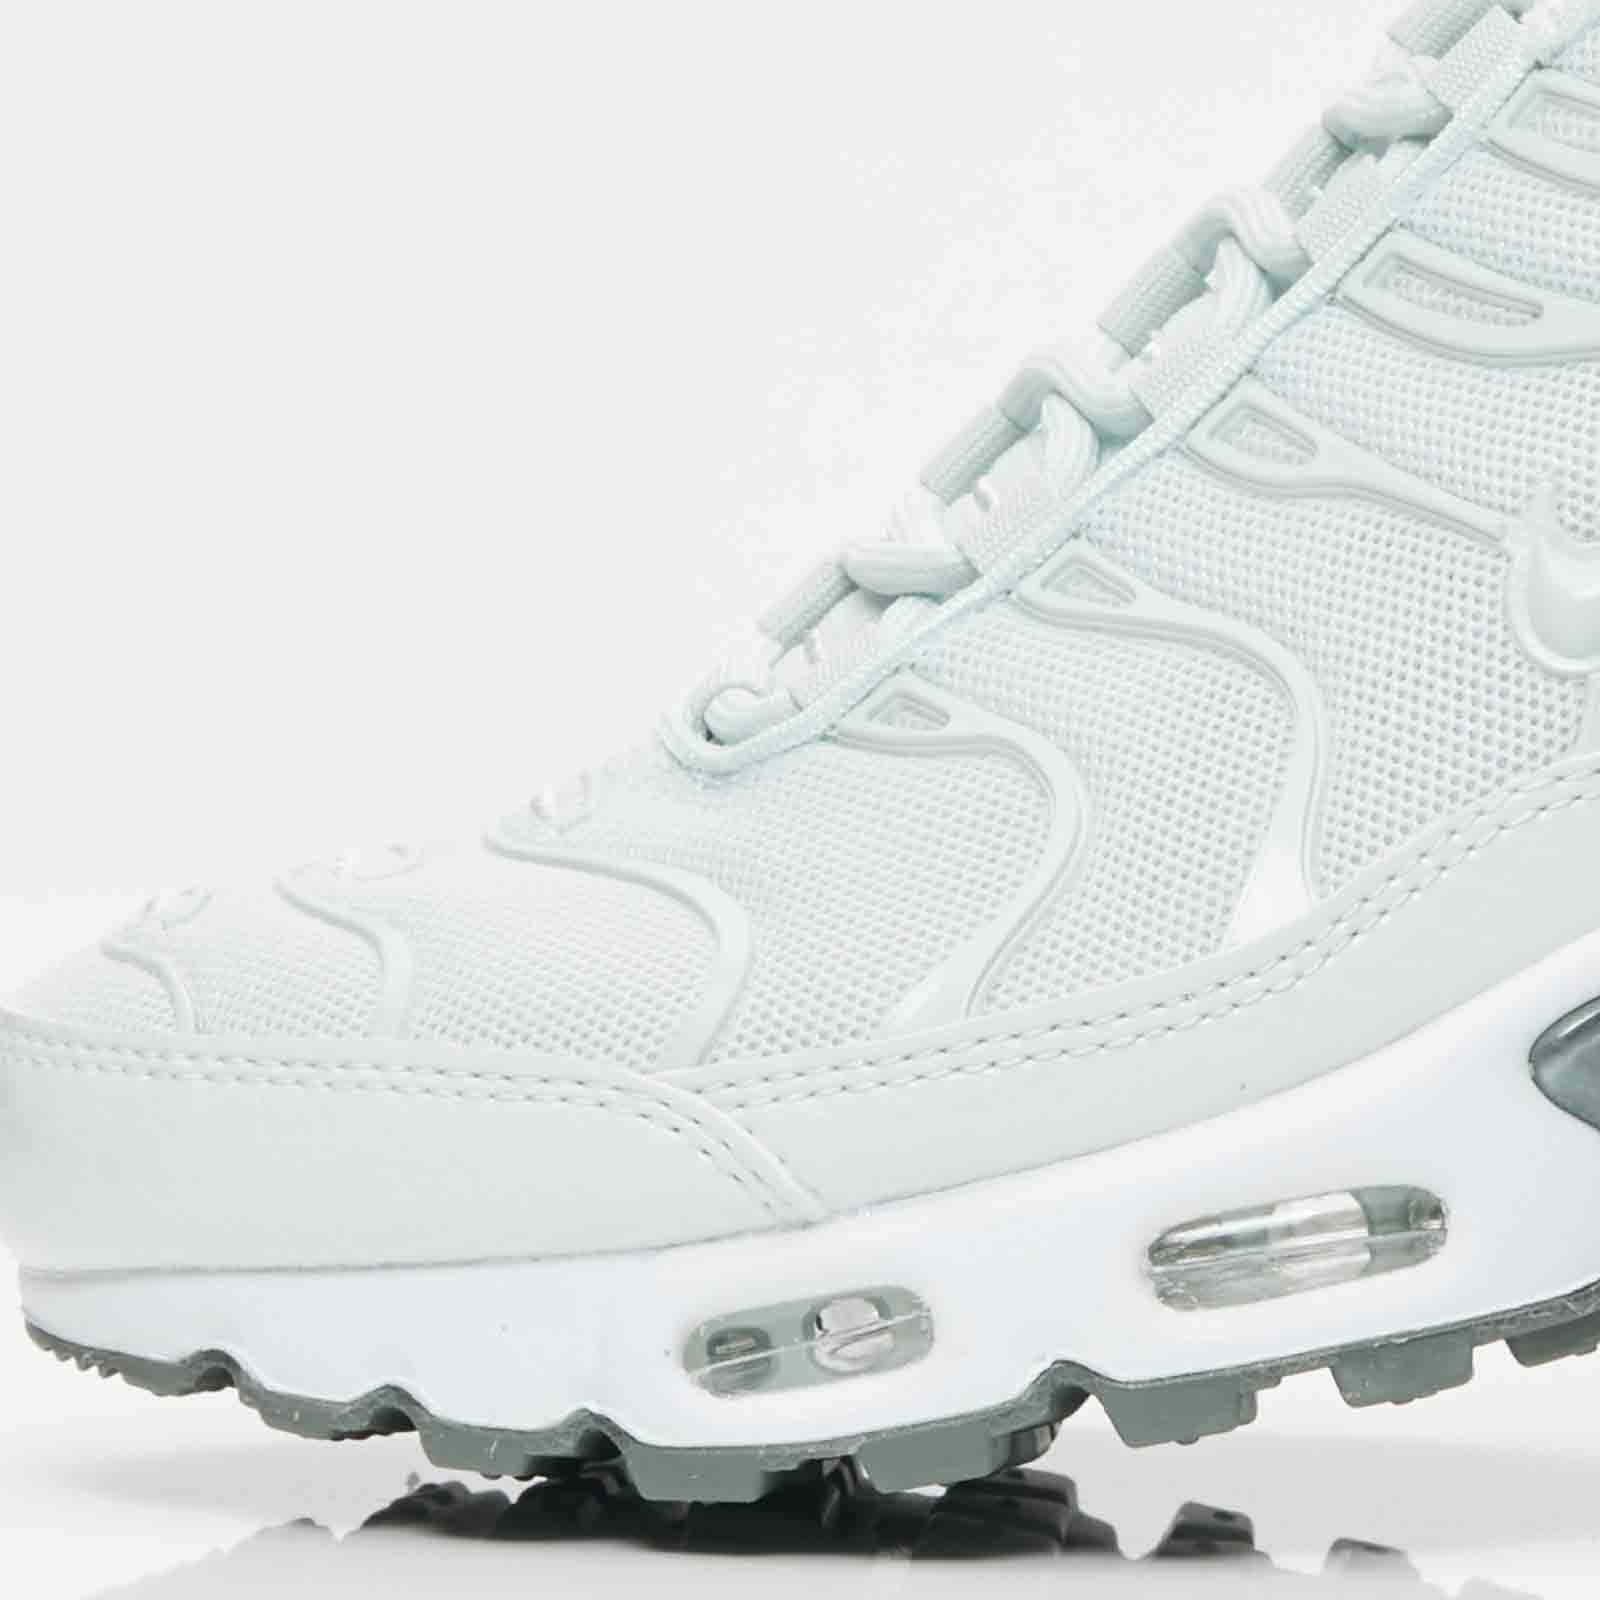 Nike Air Max Tn Grey Blue Green Maxtn Running Shoes Outlet